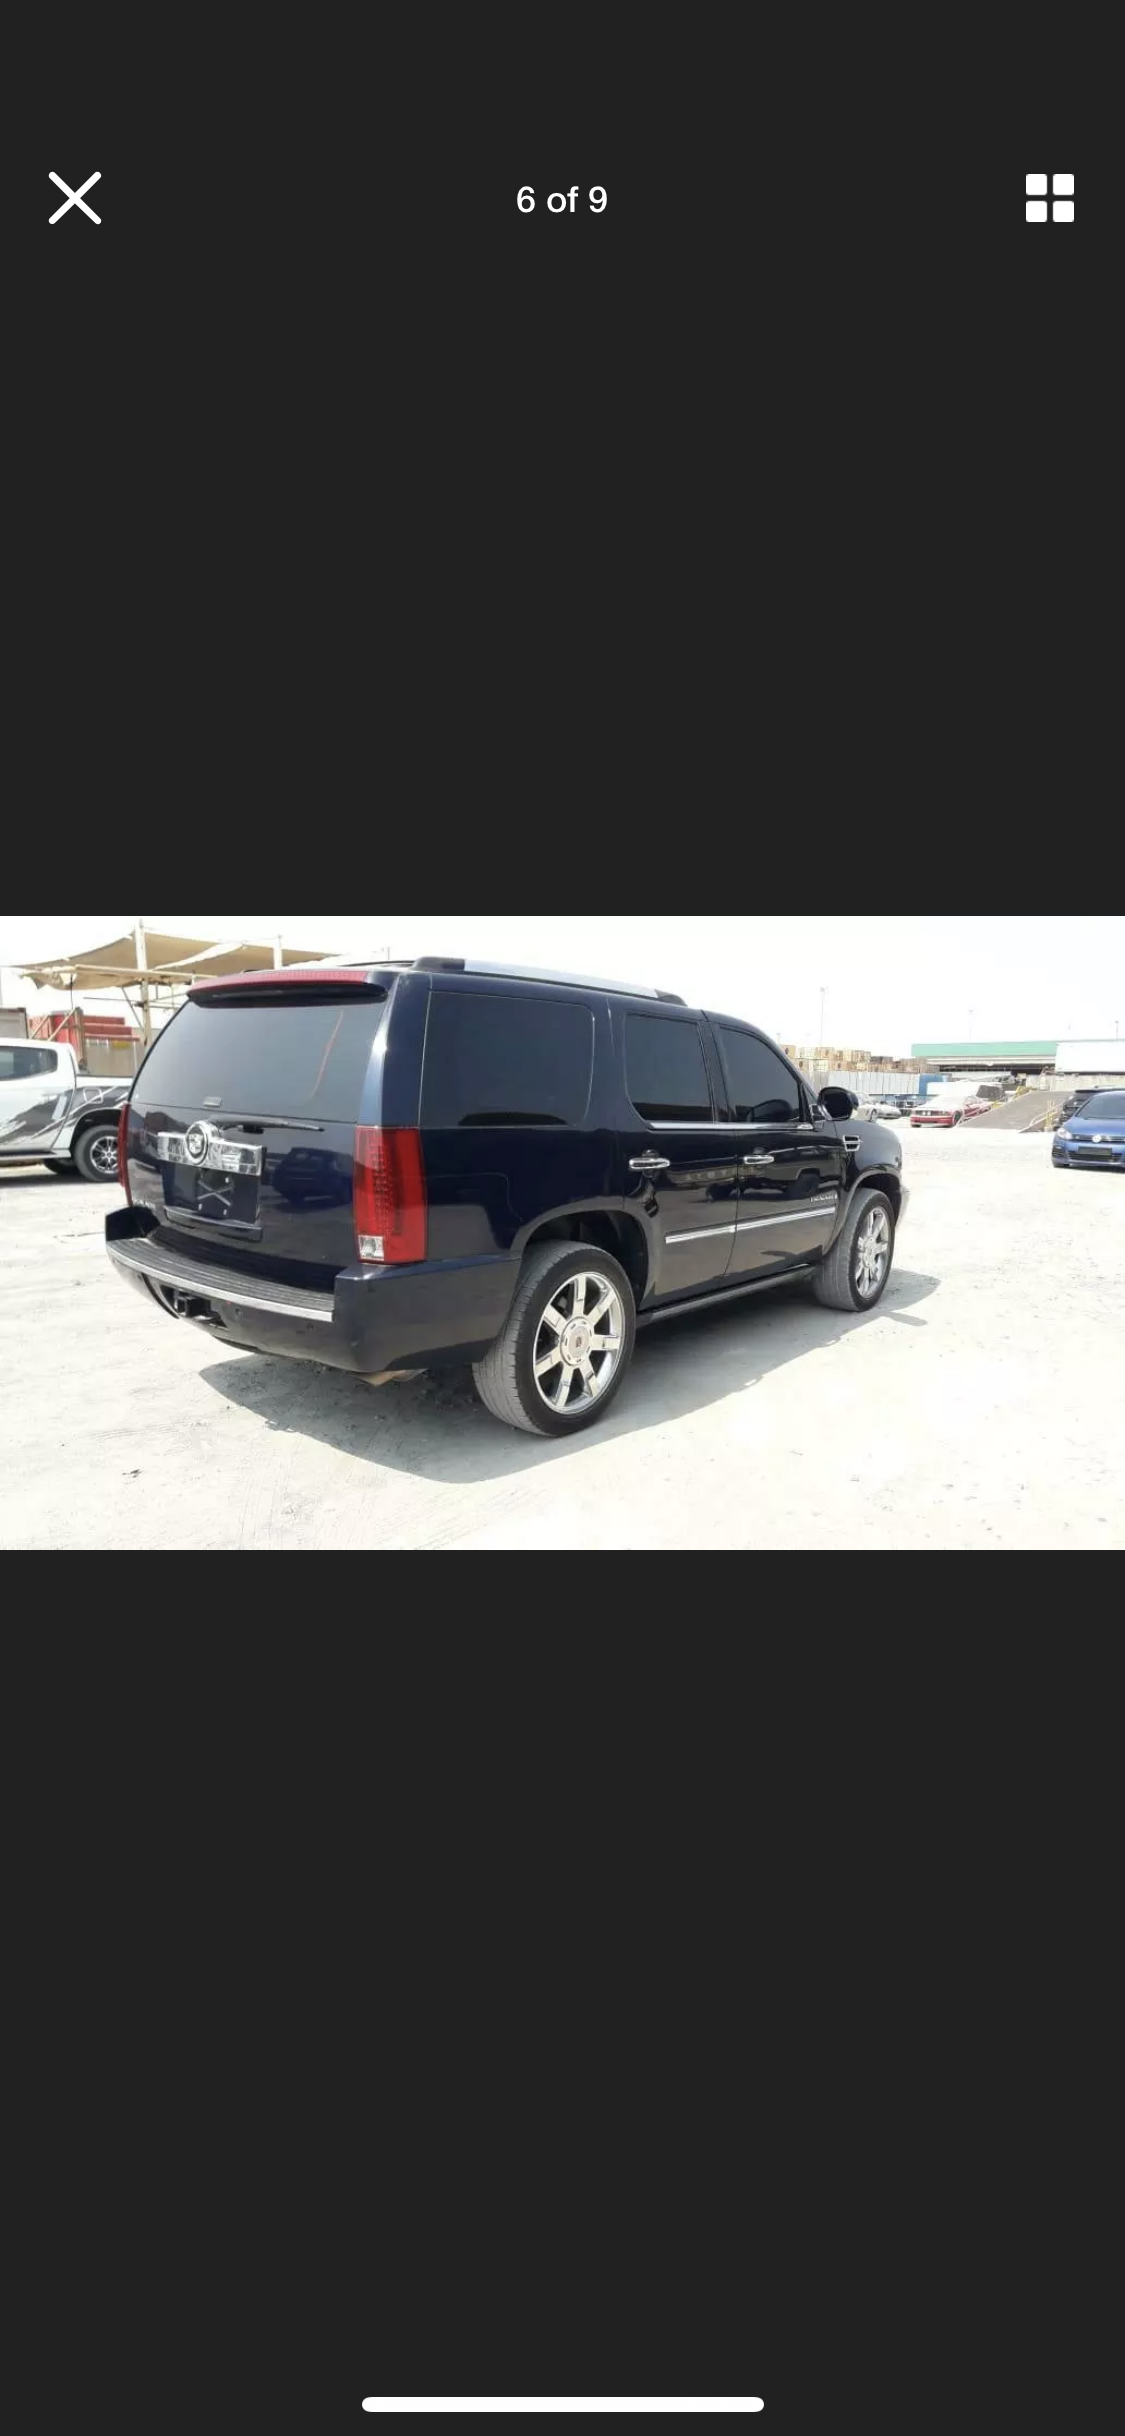 2008 CADILLAC ESCALADE 6.2 LHD LEFT HAND DRIVE FRESH IMPORT LOW M For Sale (picture 5 of 6)